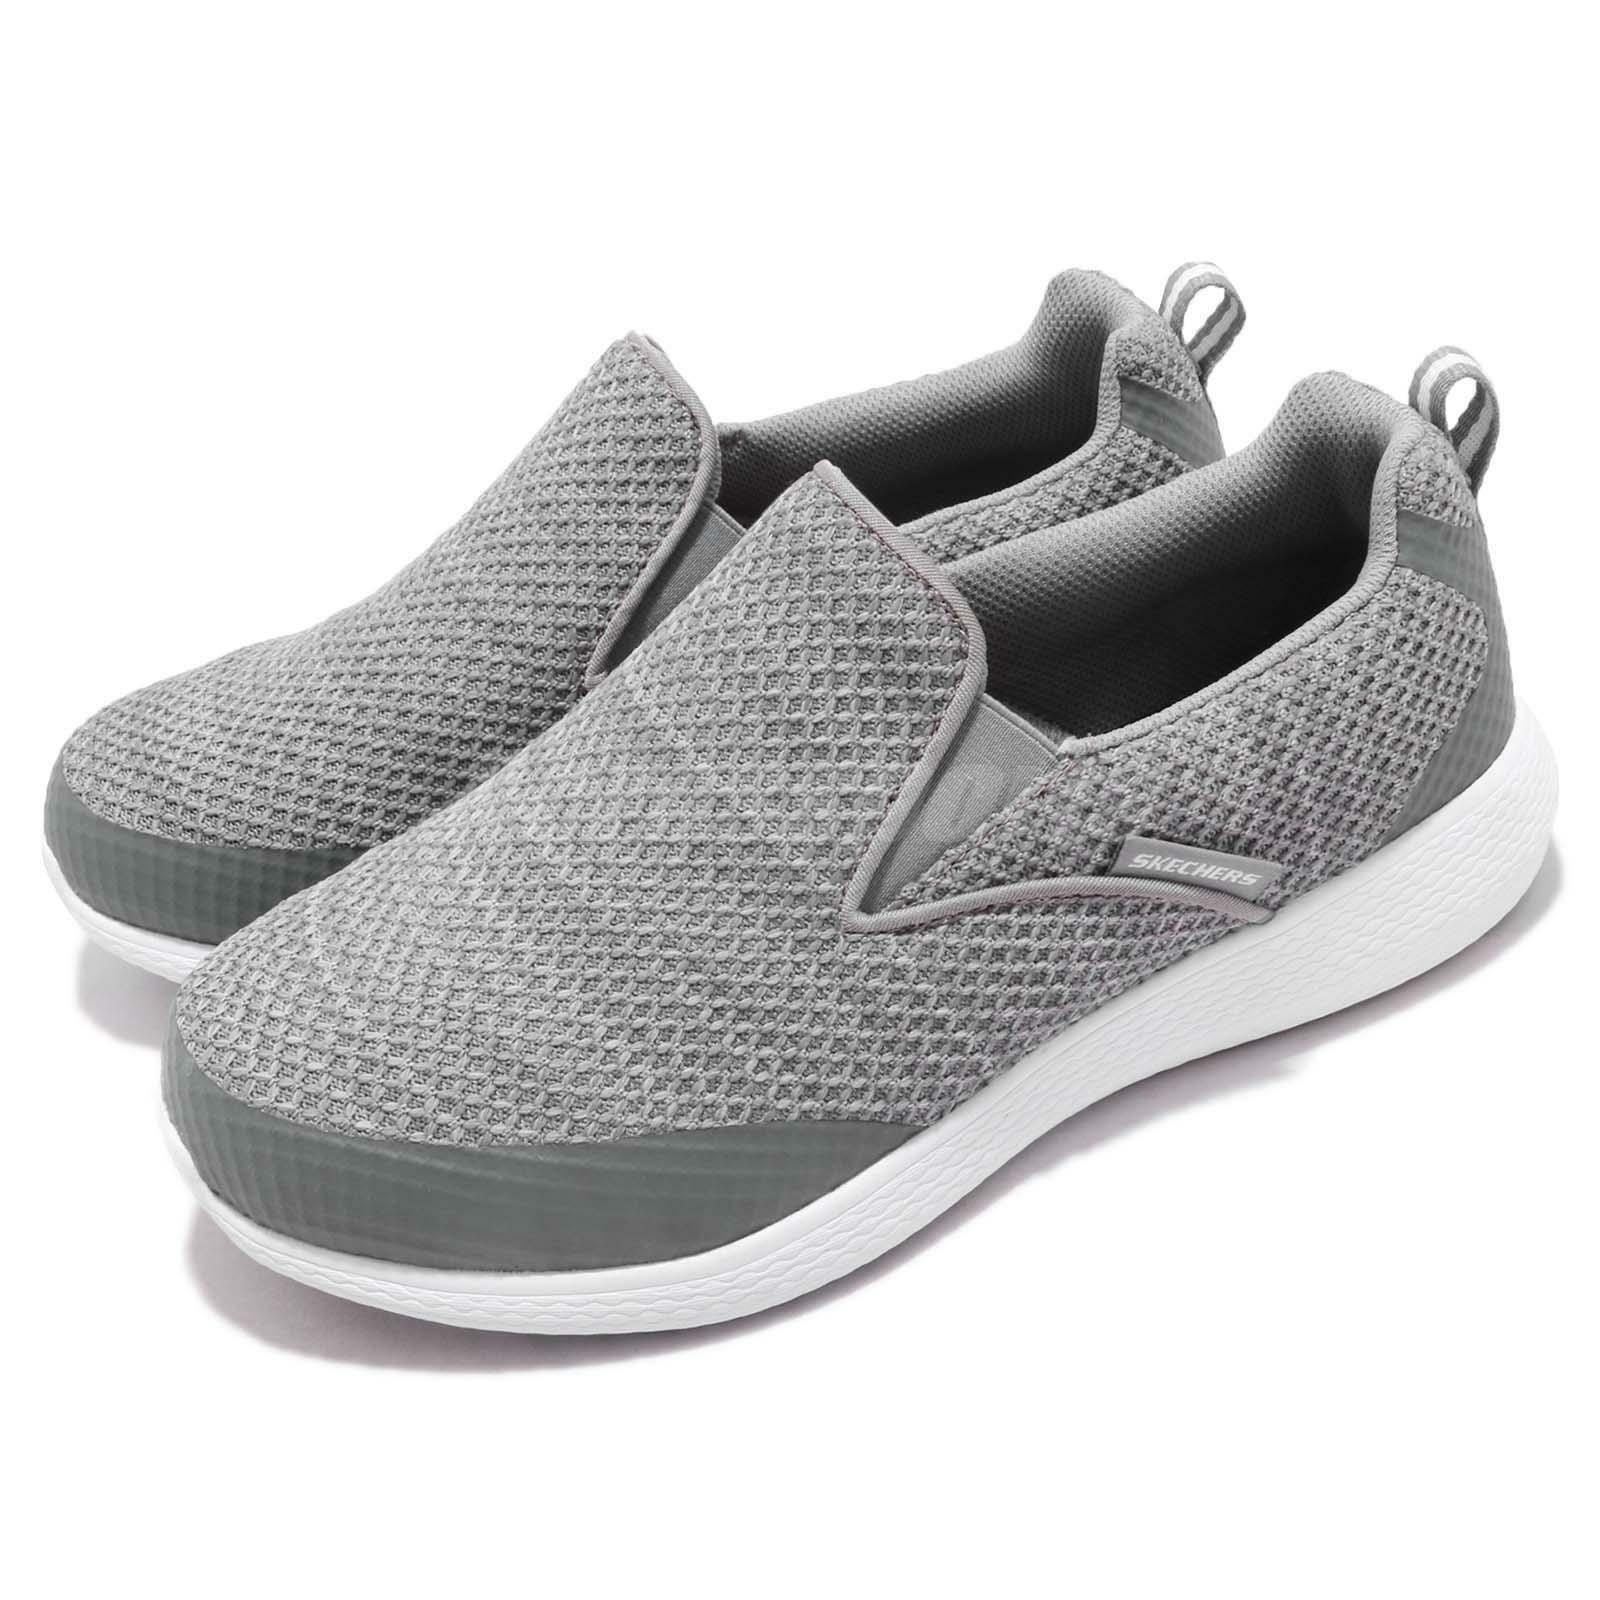 Skechers Kulow-WhiteWater Wide Grey White Men Casual Slip On shoes 52885W-GRY